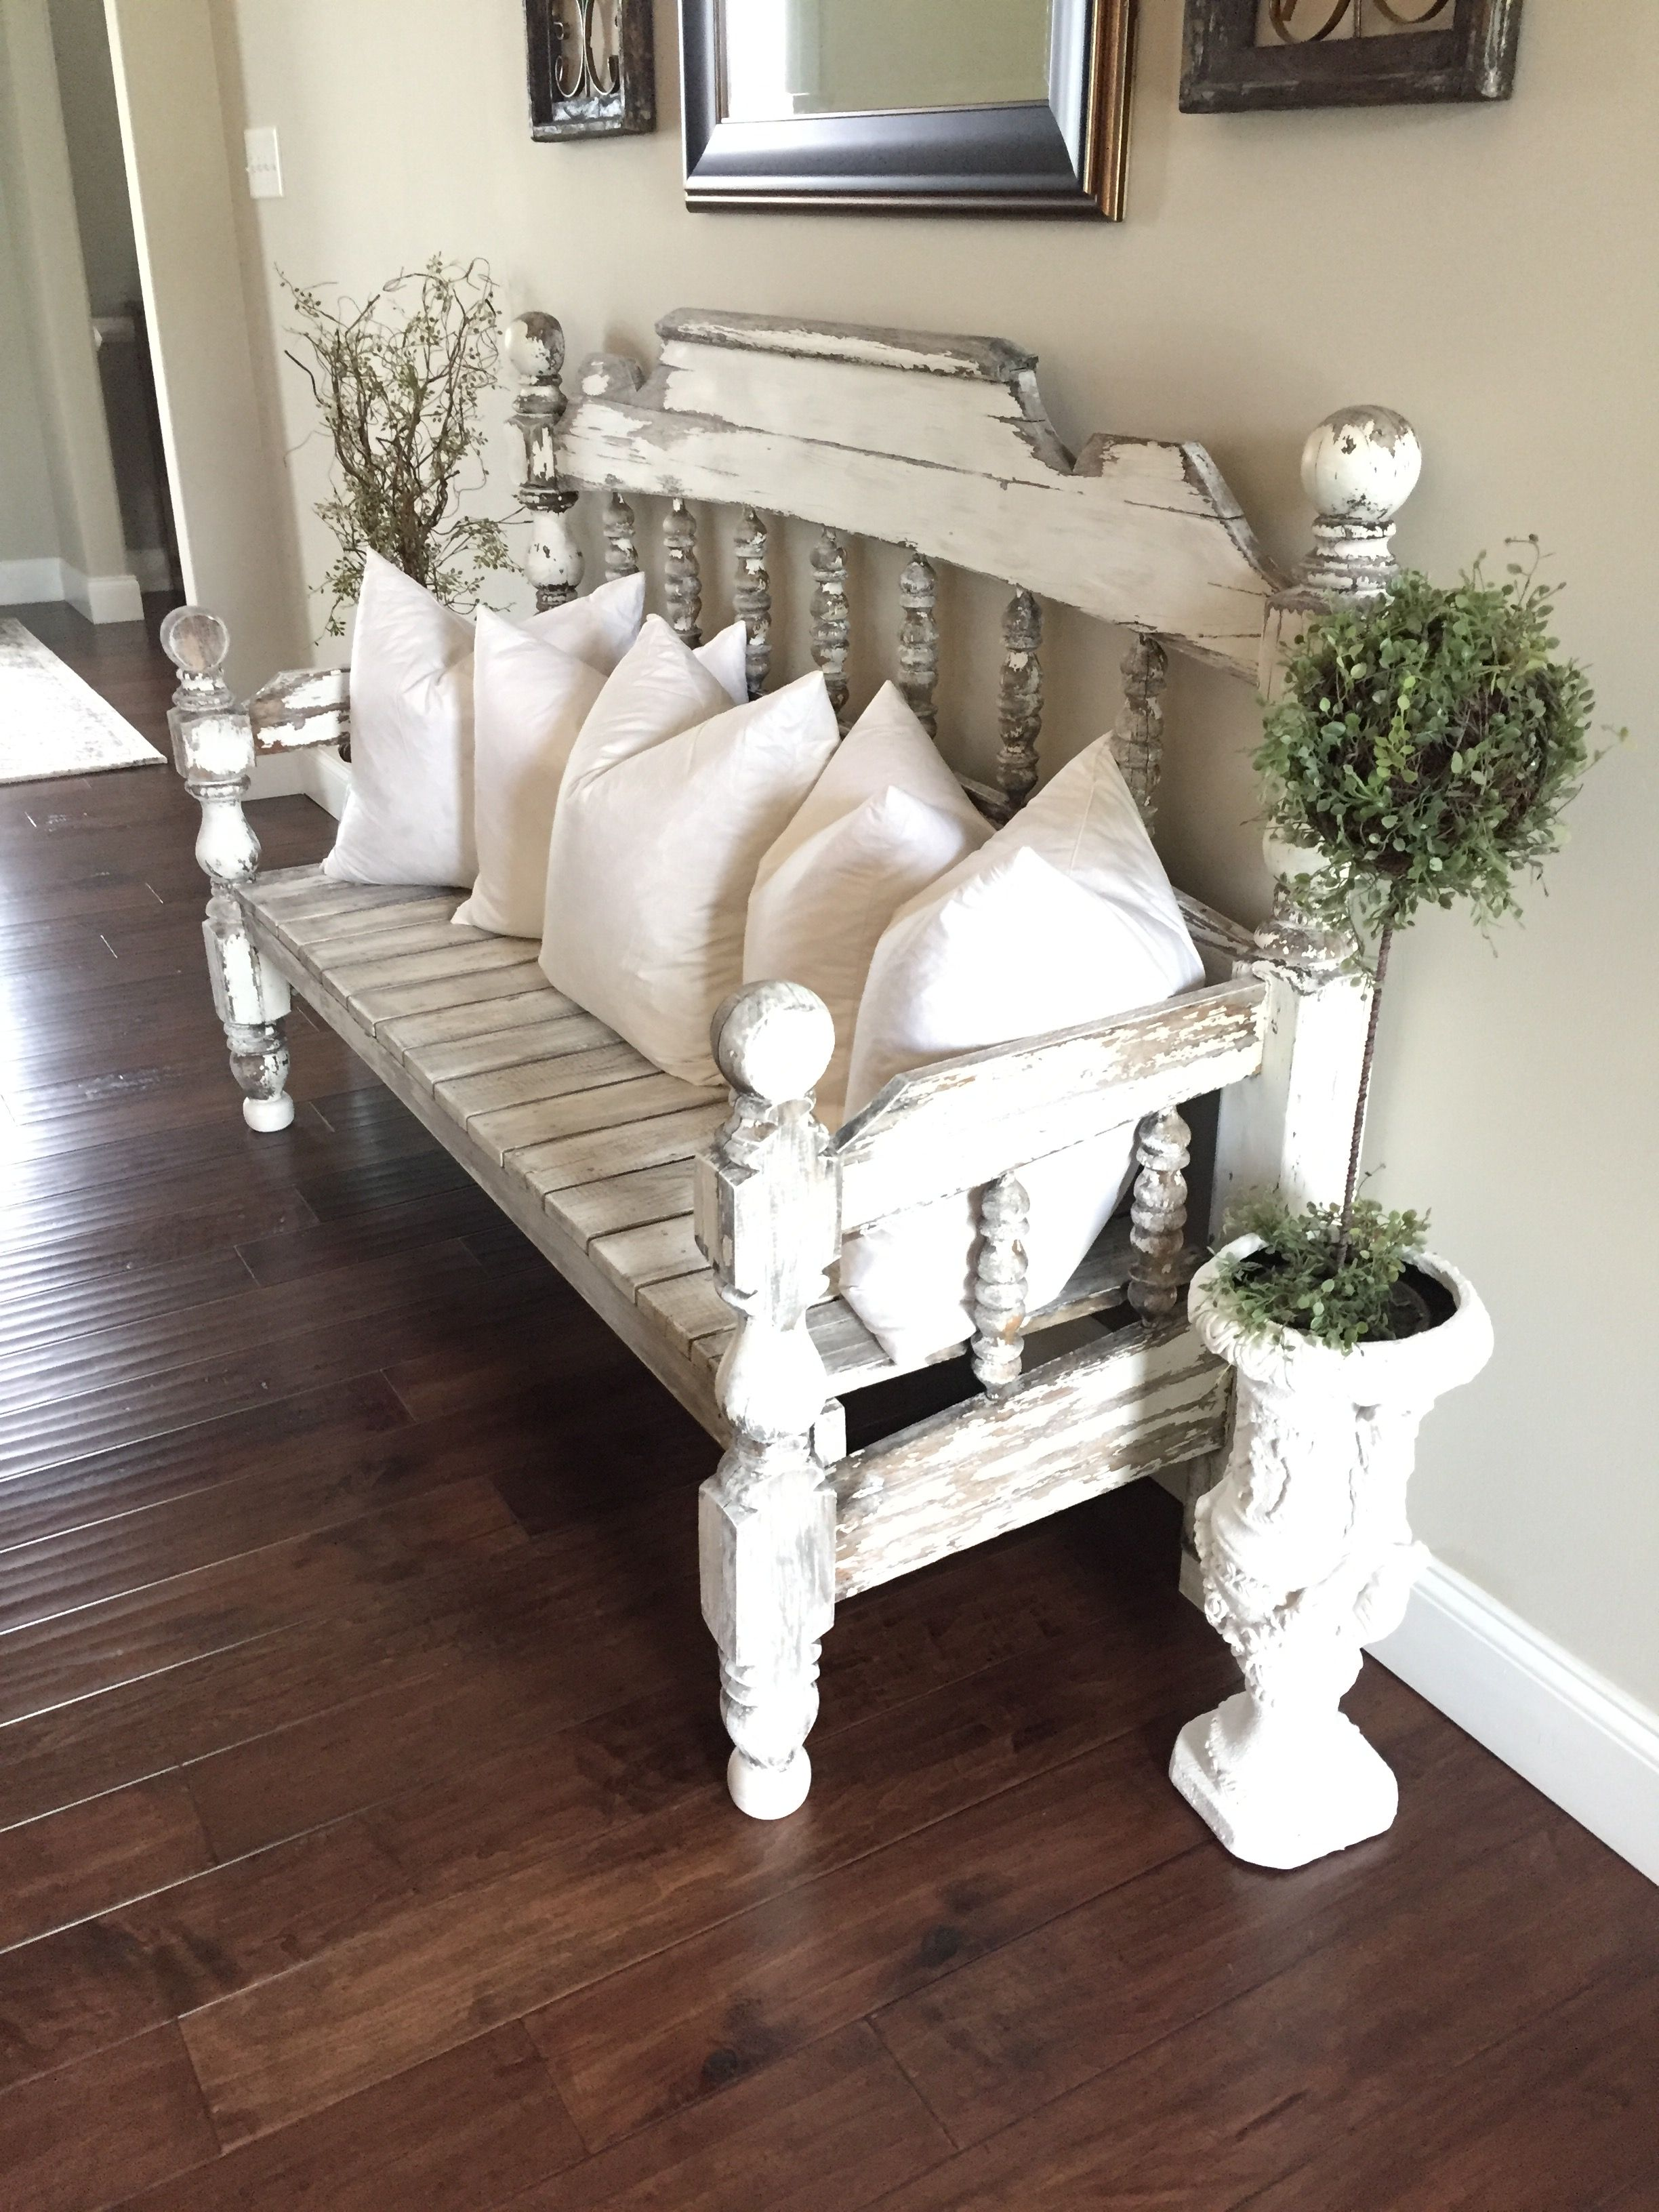 furniture living for essentialsbench bench more from livings essentials vermont room collection natural benches product related hardwood copeland